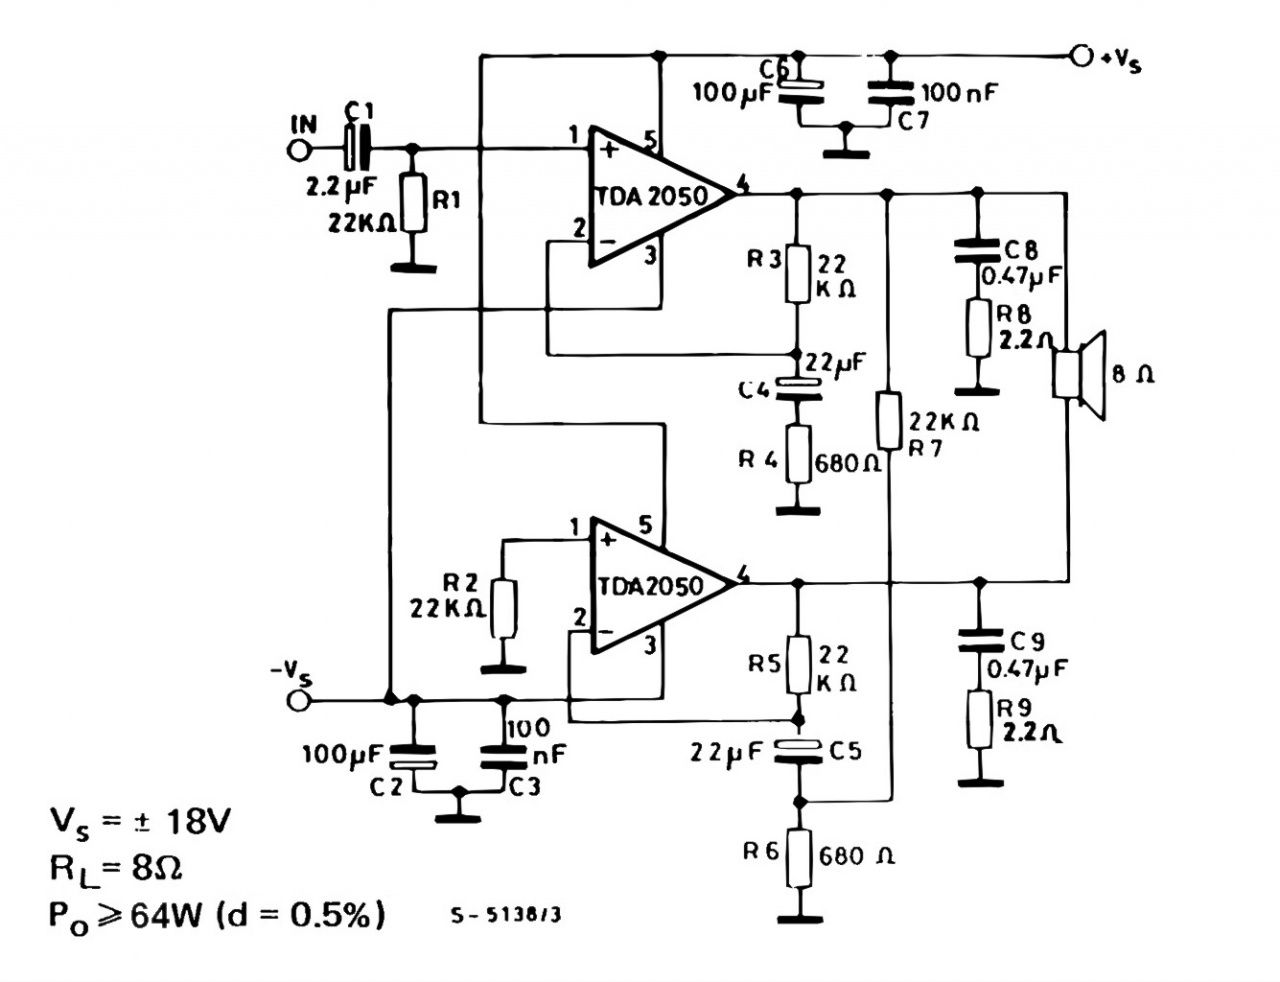 tda2050 bridge amplifier circuit Google Search Circuit